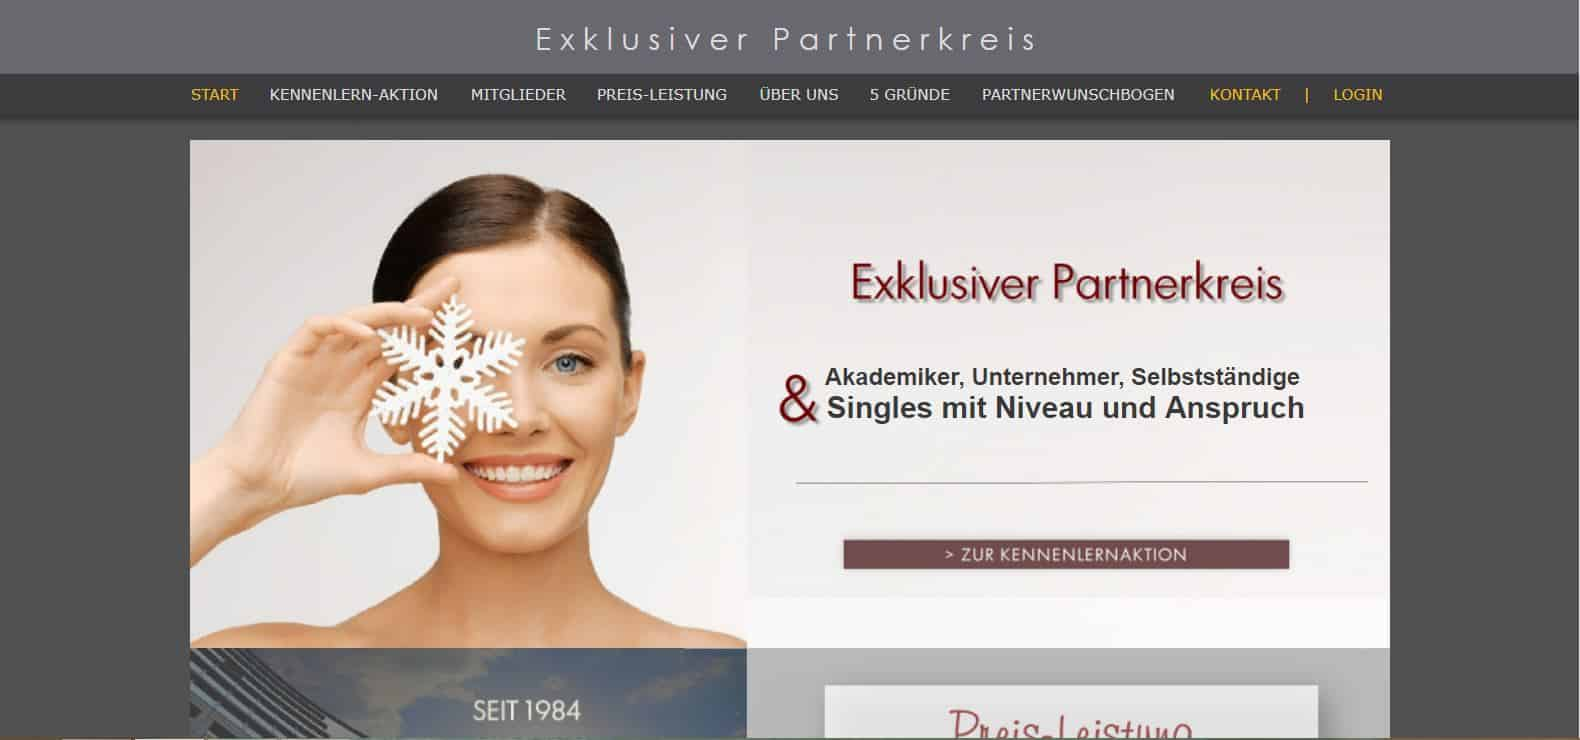 Partnervermittlung dna